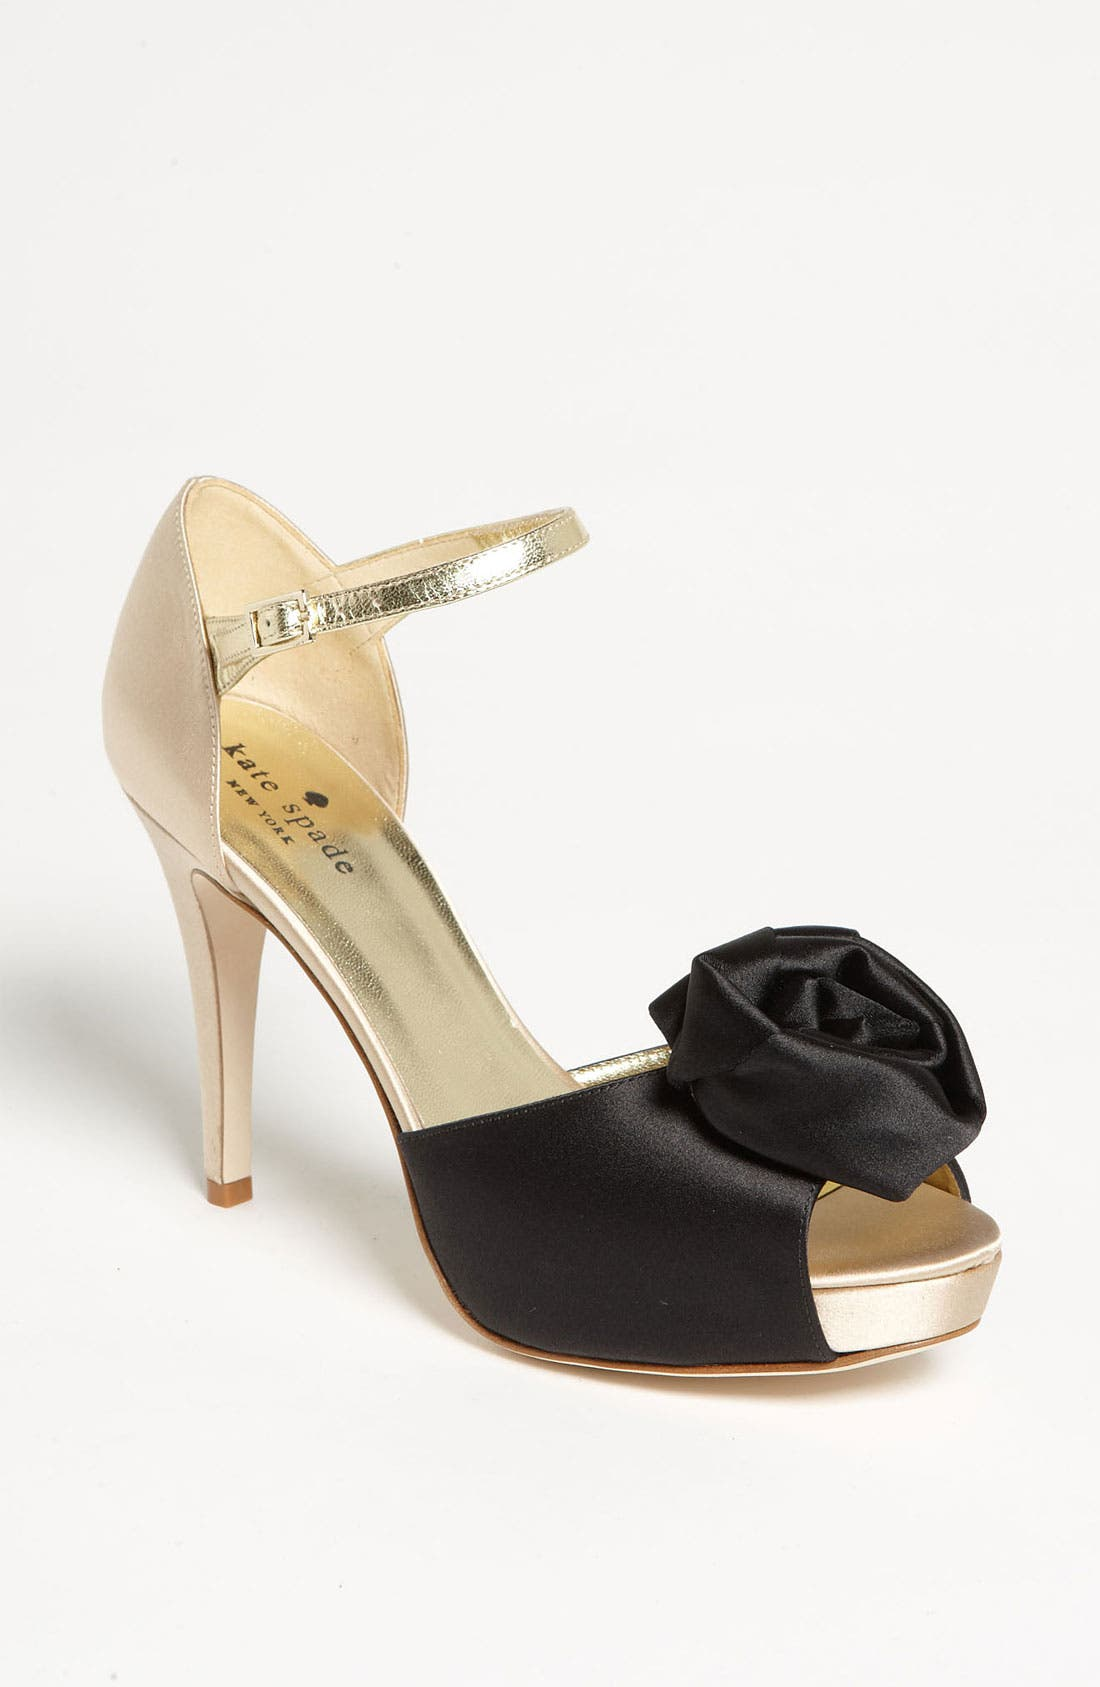 Main Image - kate spade new york 'gretchen' pump